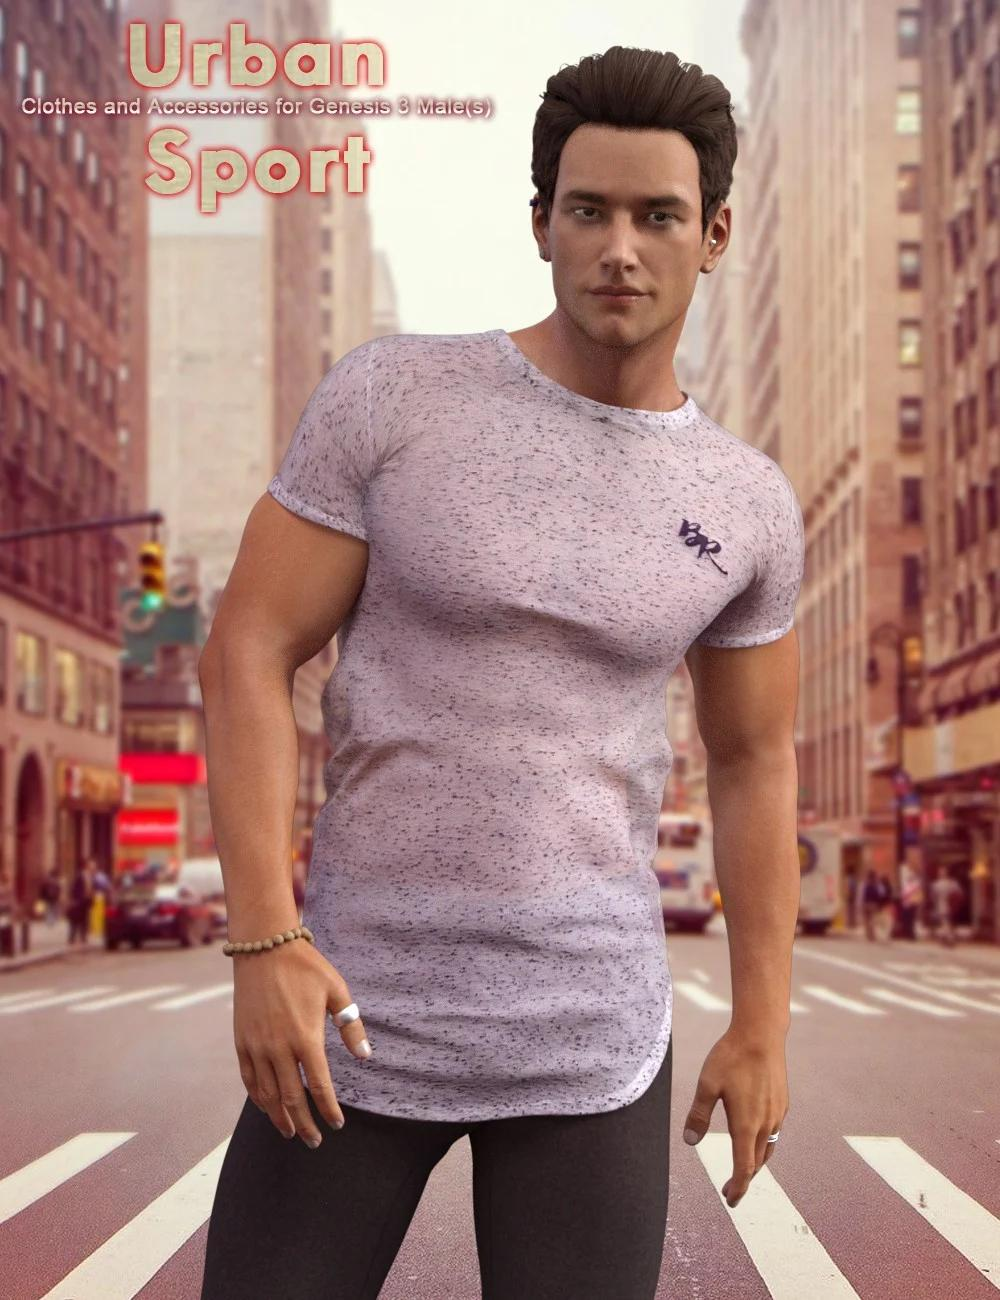 Urban Sport for Genesis 3 Male(s)